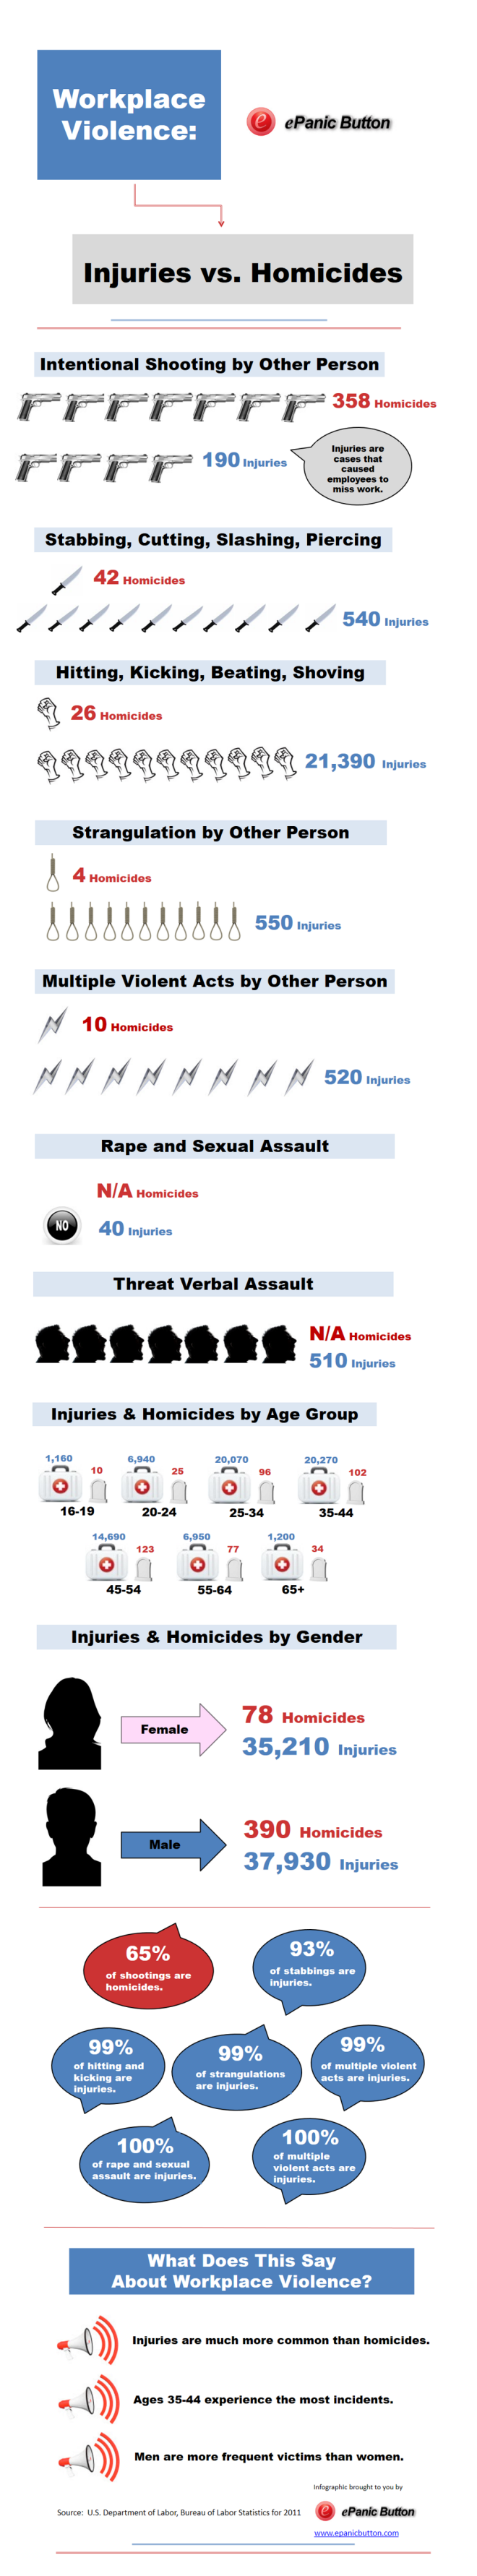 Statistics of Workplace Violence